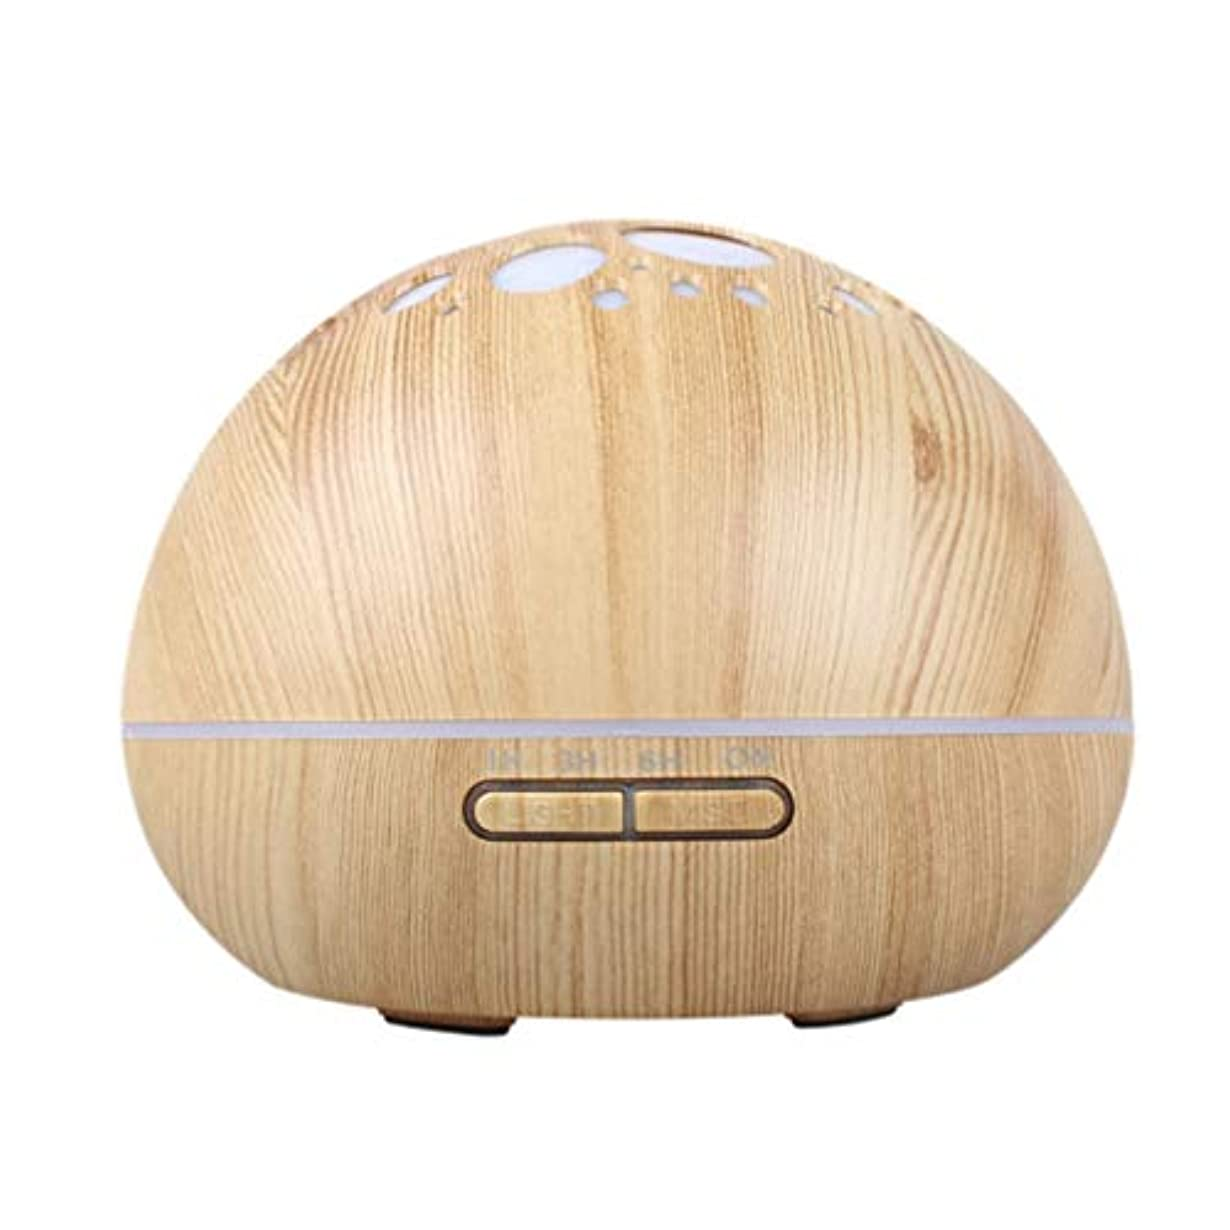 Uonlytech 1pc Aromatherapy Diffuser Durable High Quality Mute Essential Oil Diffuser Humidifier for Bedroom Office